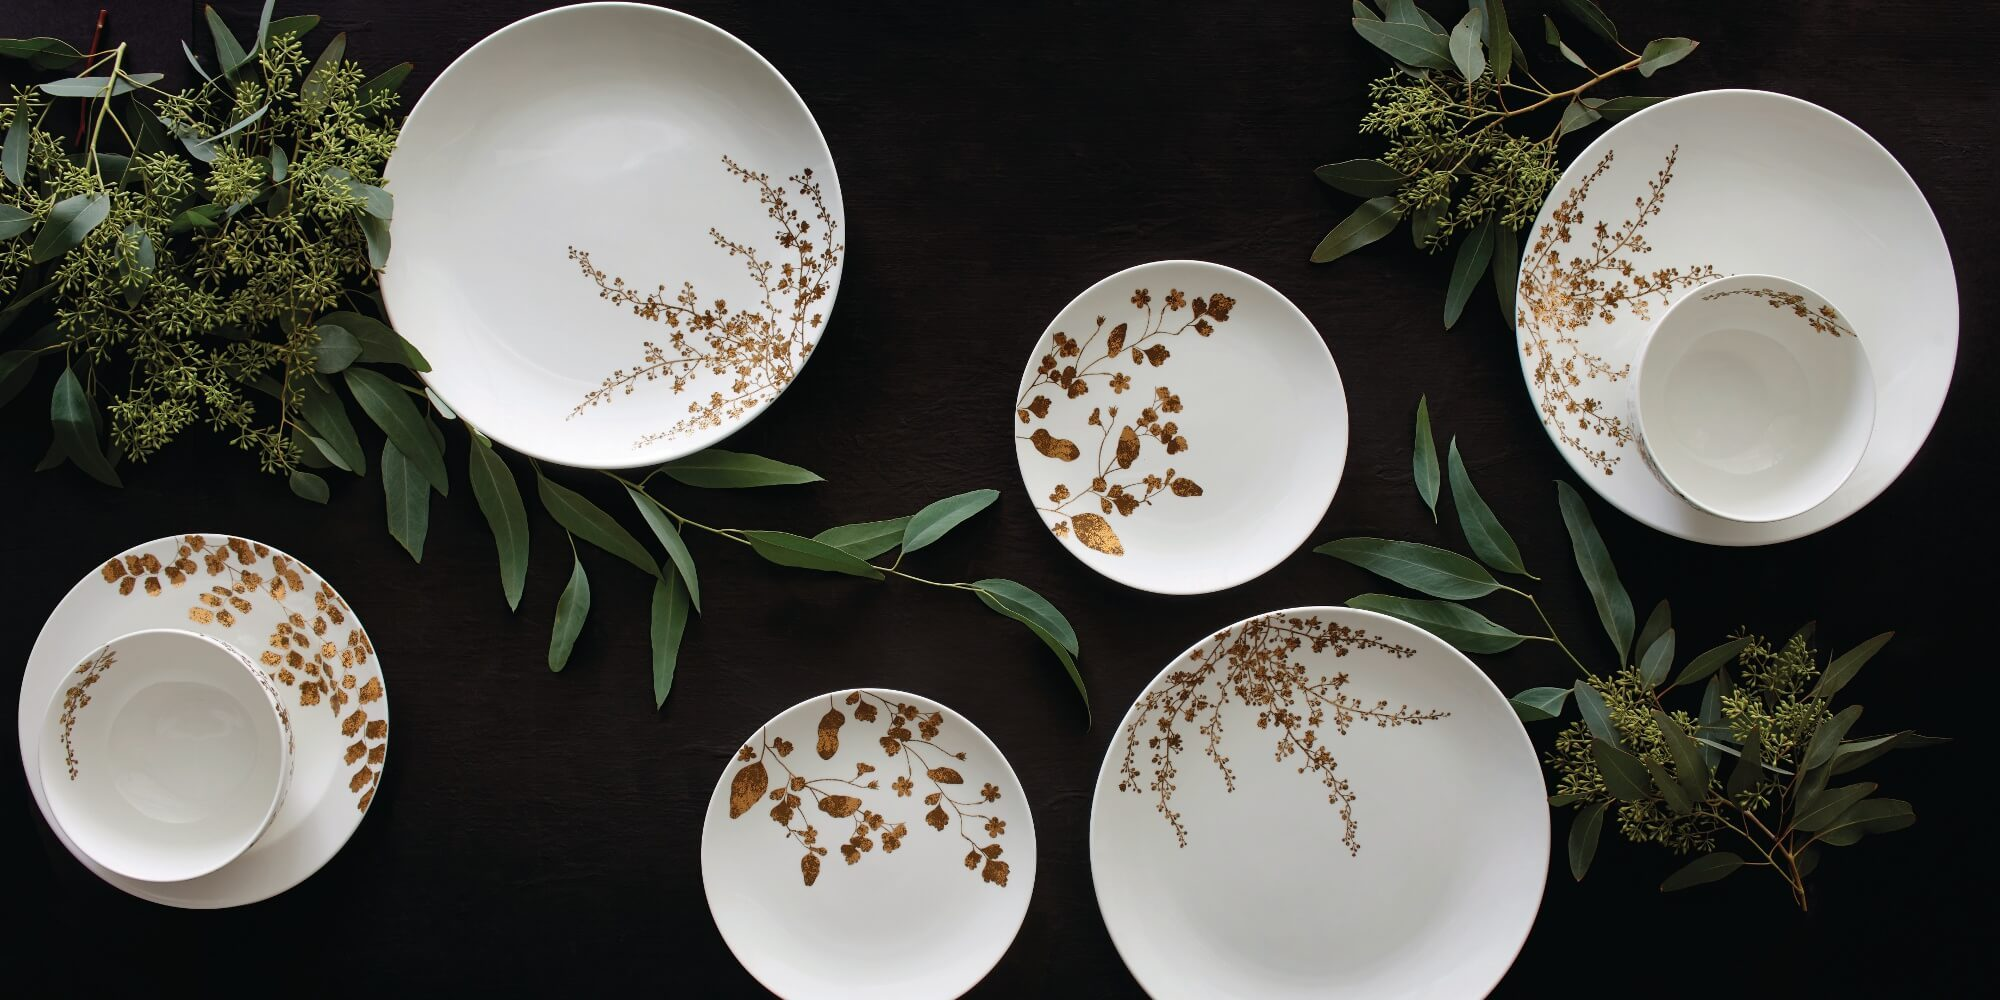 Choosing Materials for your Tableware